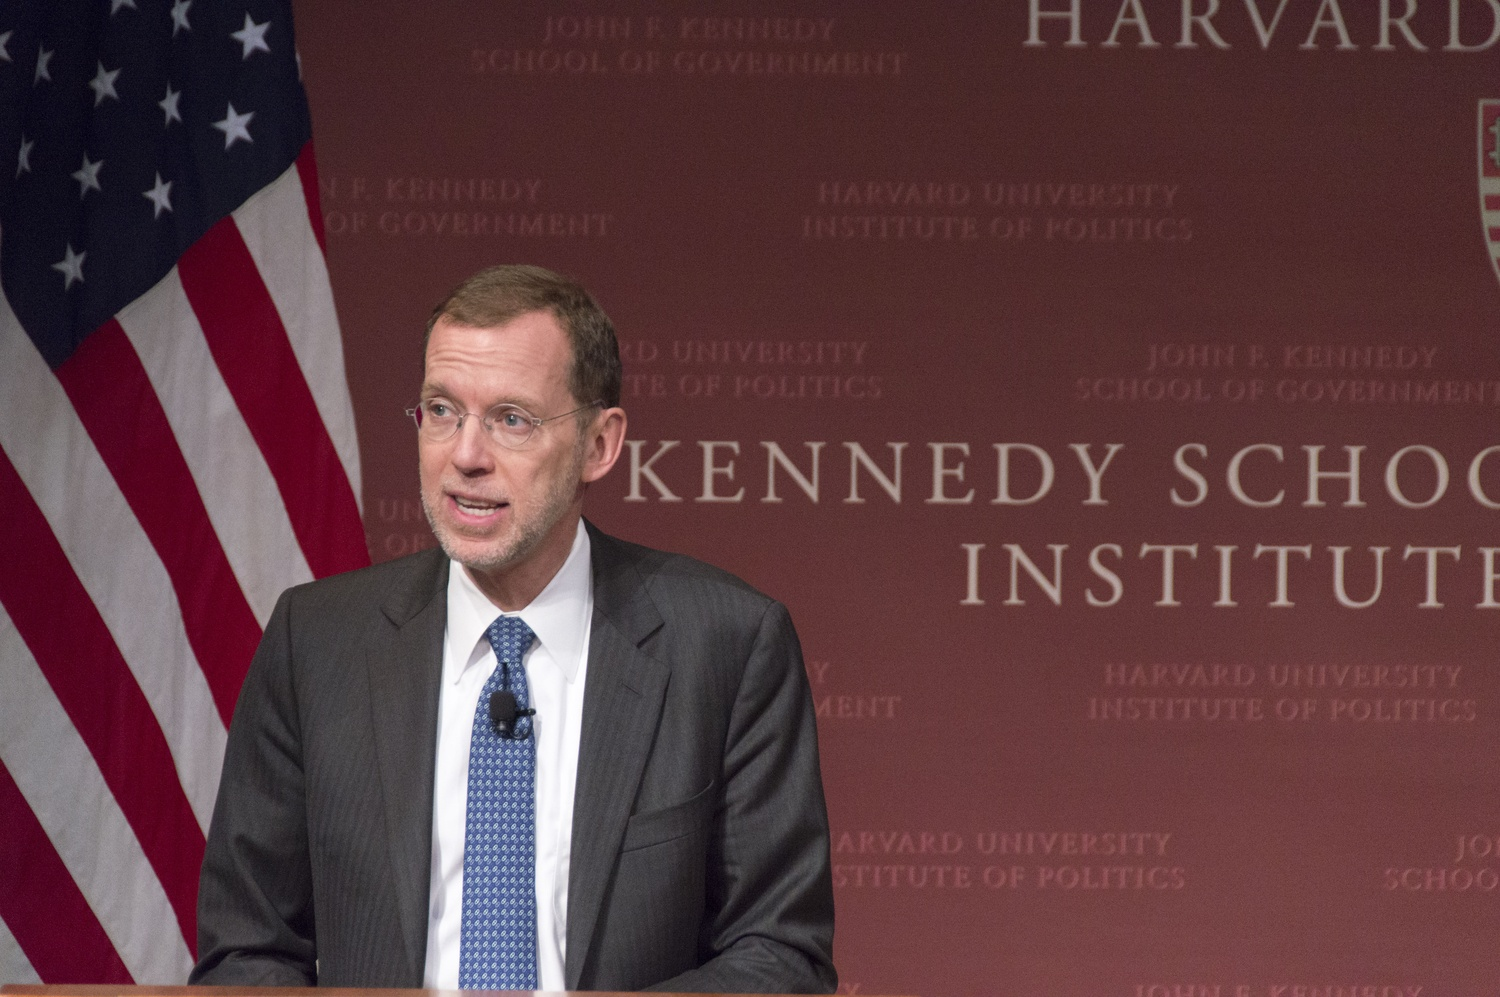 Harvard Kennedy School Dean Douglas W. Elmendorf declined to comment on whether Harvard should divest from the fossil fuel industry in an interview last week.